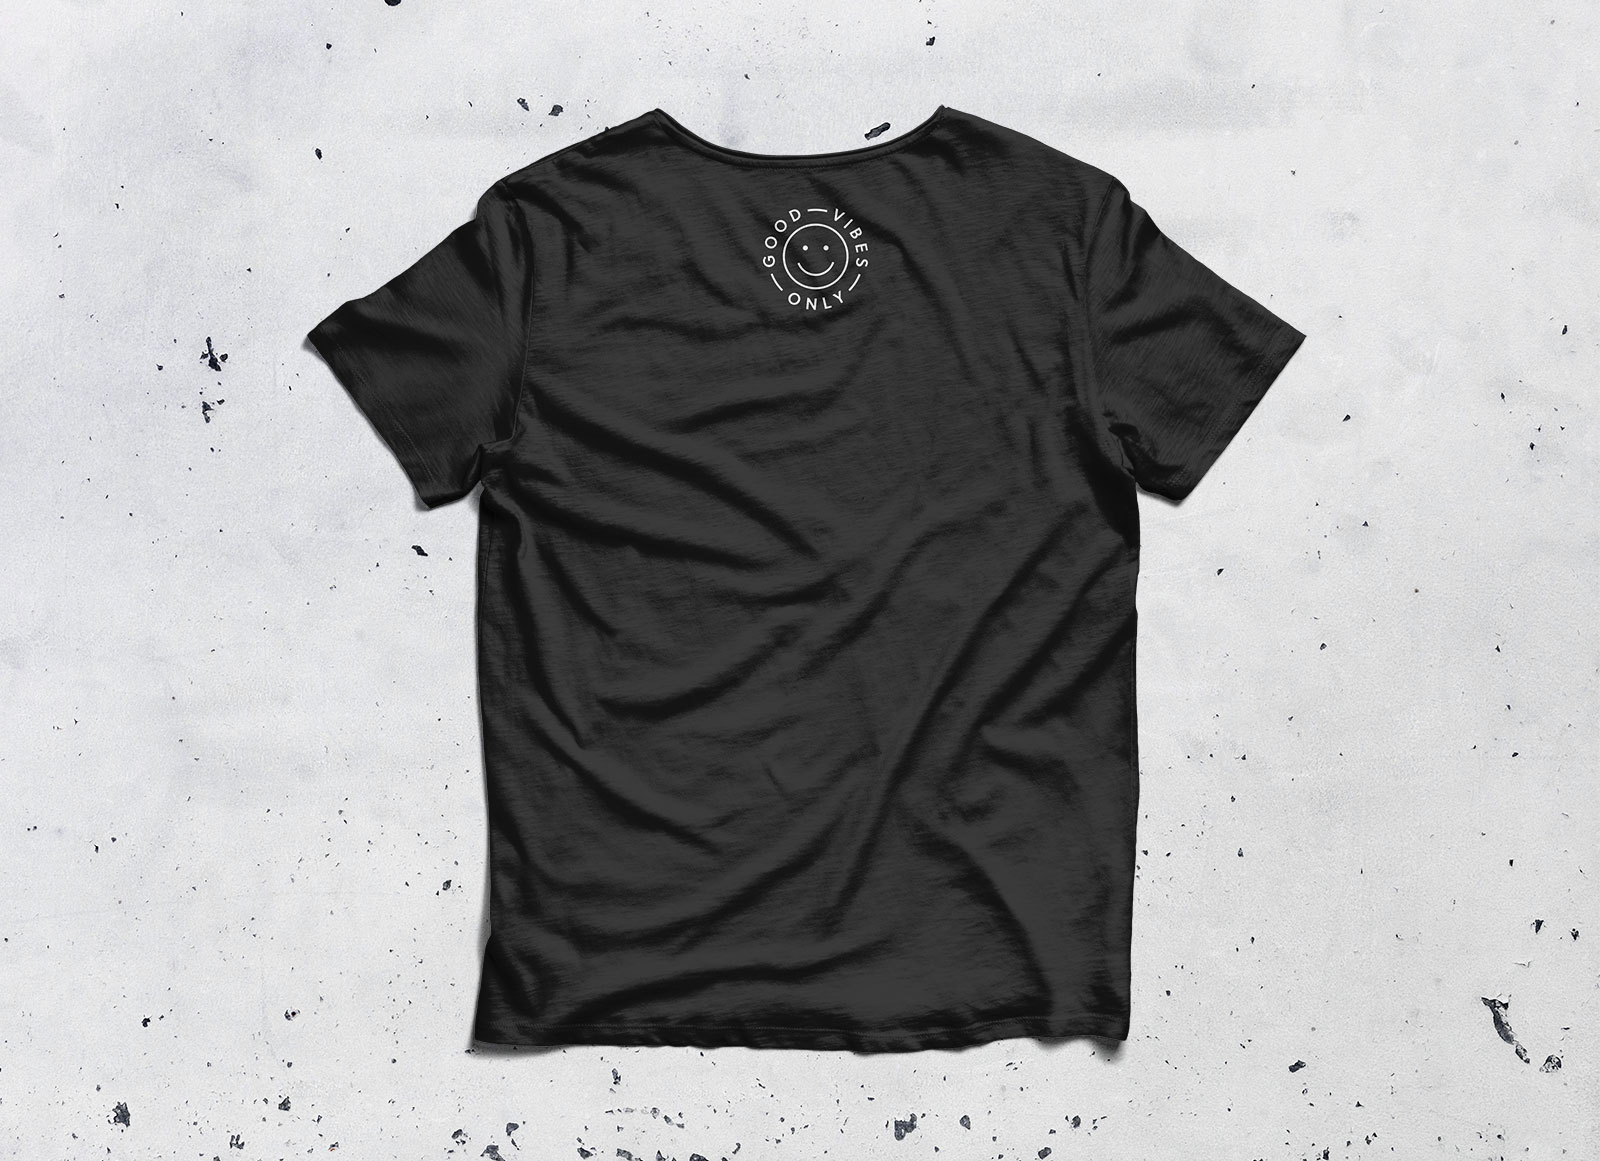 Free-Half-Sleeves-Round-Neck-Black-T-shirt-Mockup-PSD